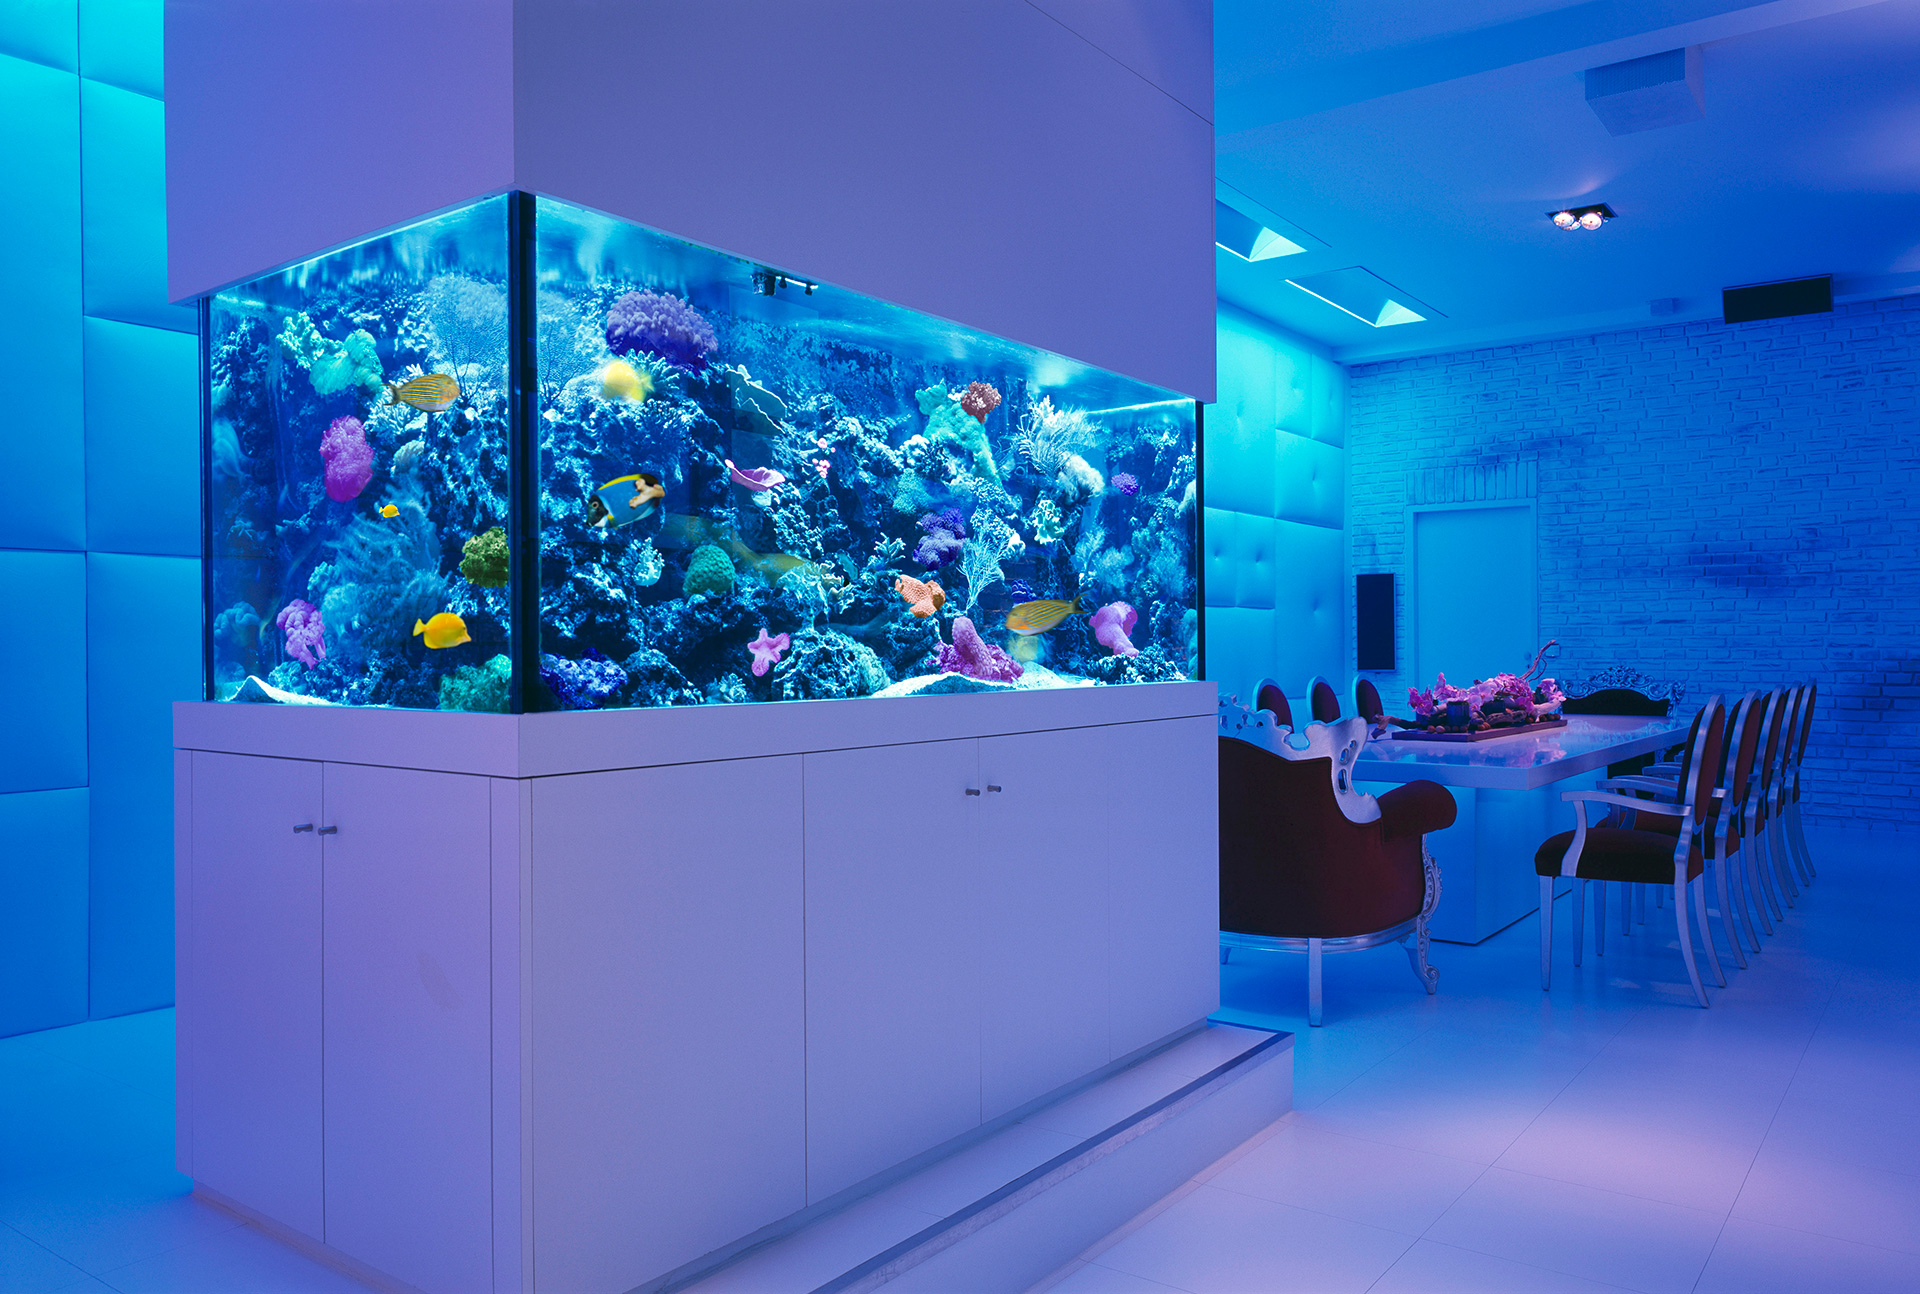 Feng Shui Tips for Location of the Fish Tank At Home